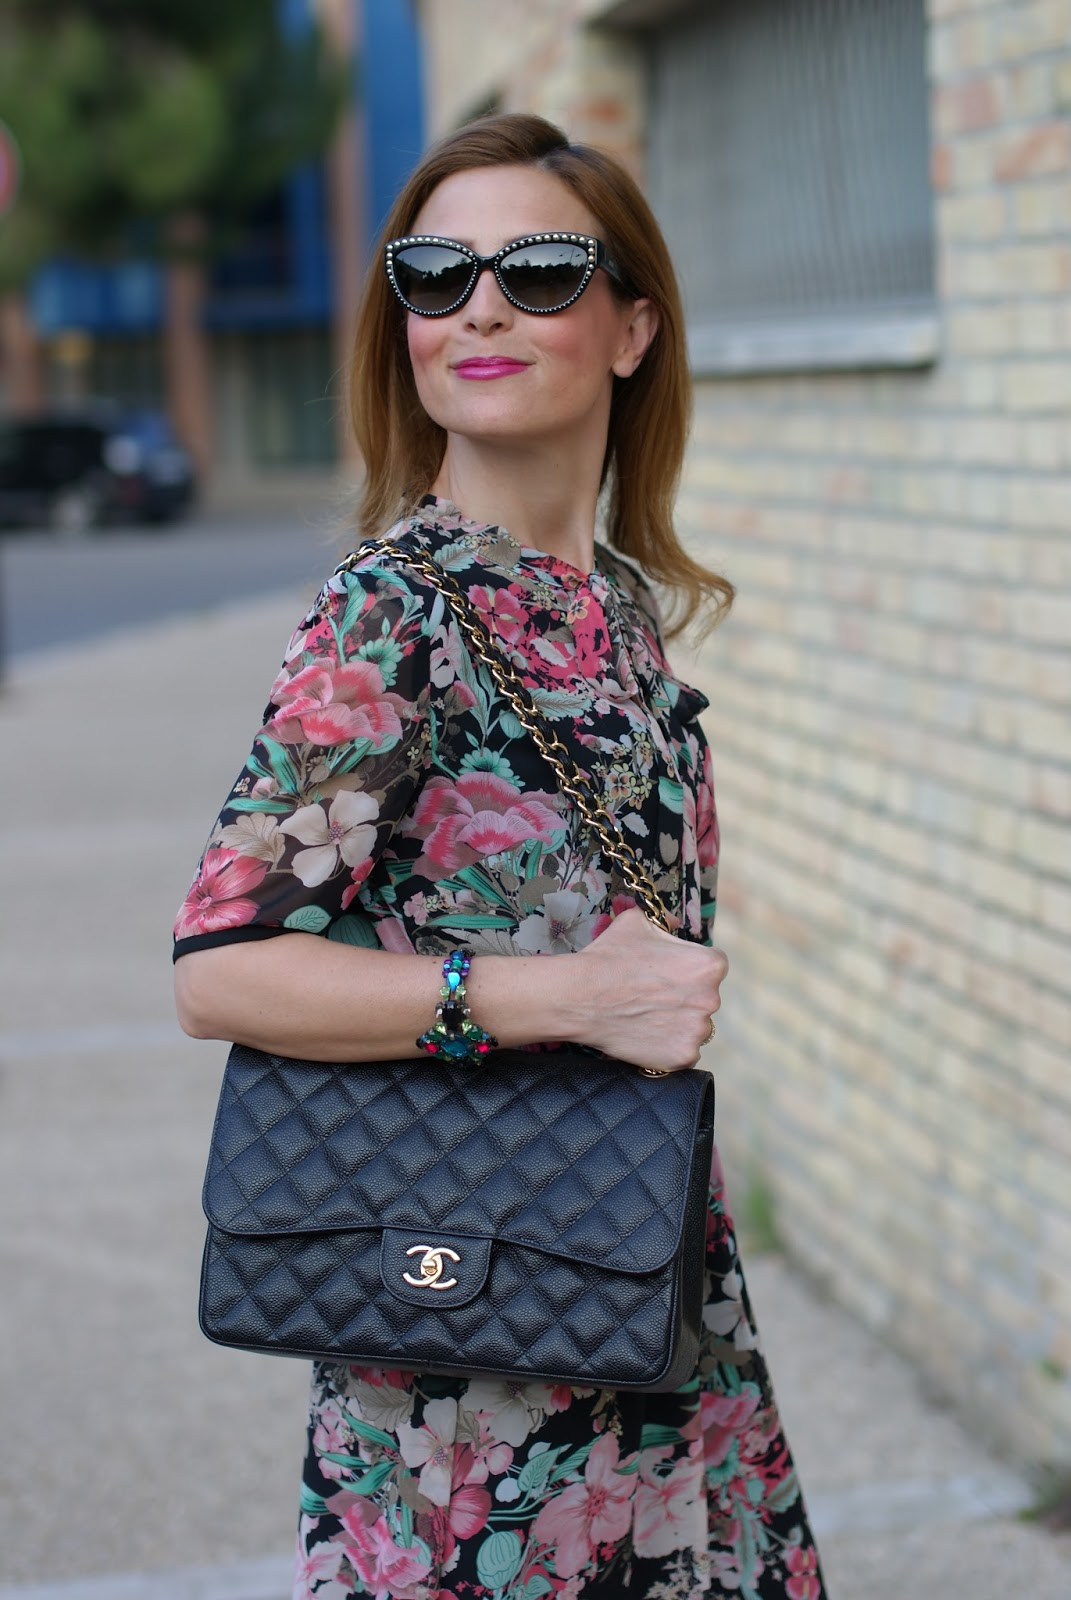 Floral bon ton dress with Chanel bag on Fashion and Cookies fashion blog, fashion blogger style